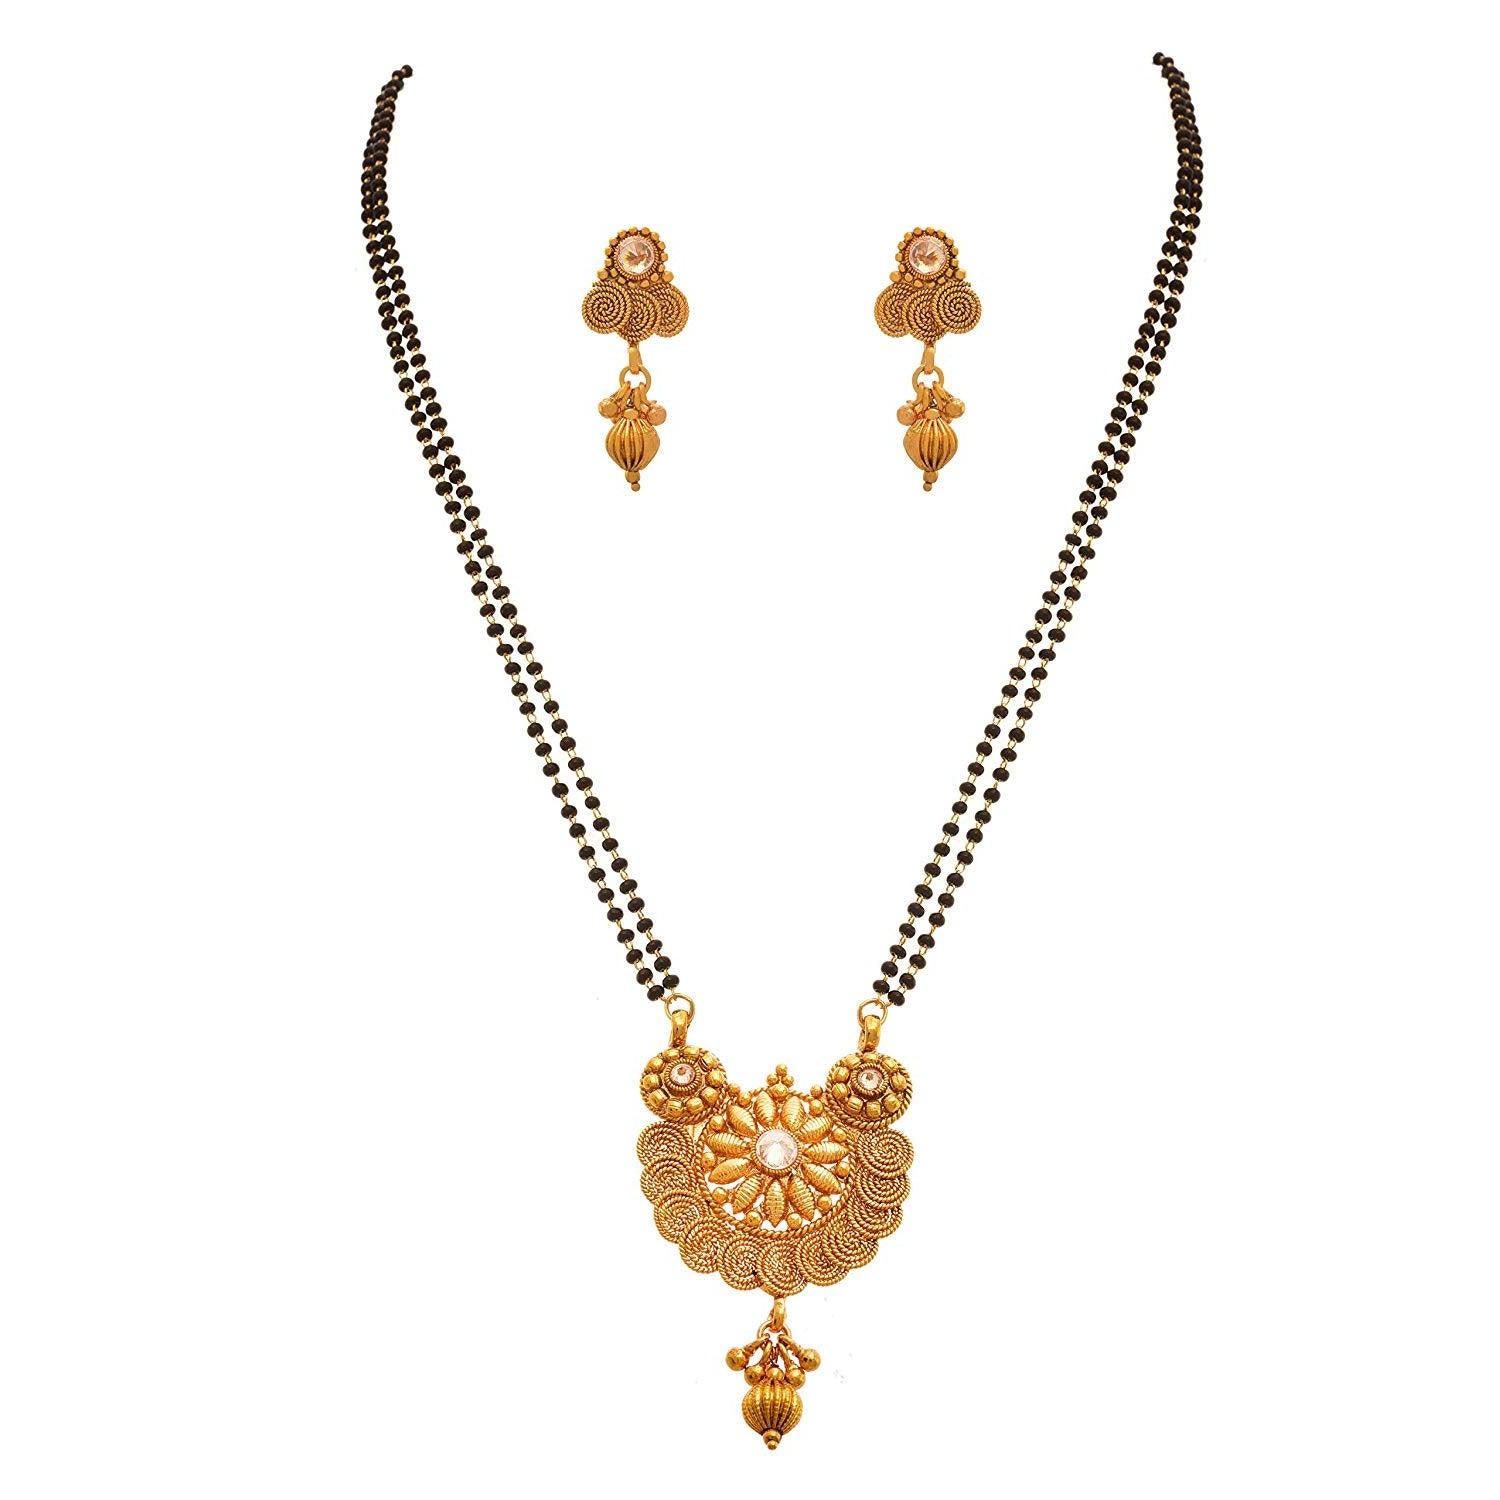 JFL - Traditional Ethnic One Gram Gold Plated Spiral LCD Champagne Designer Mangalsutra with Earring for Women.